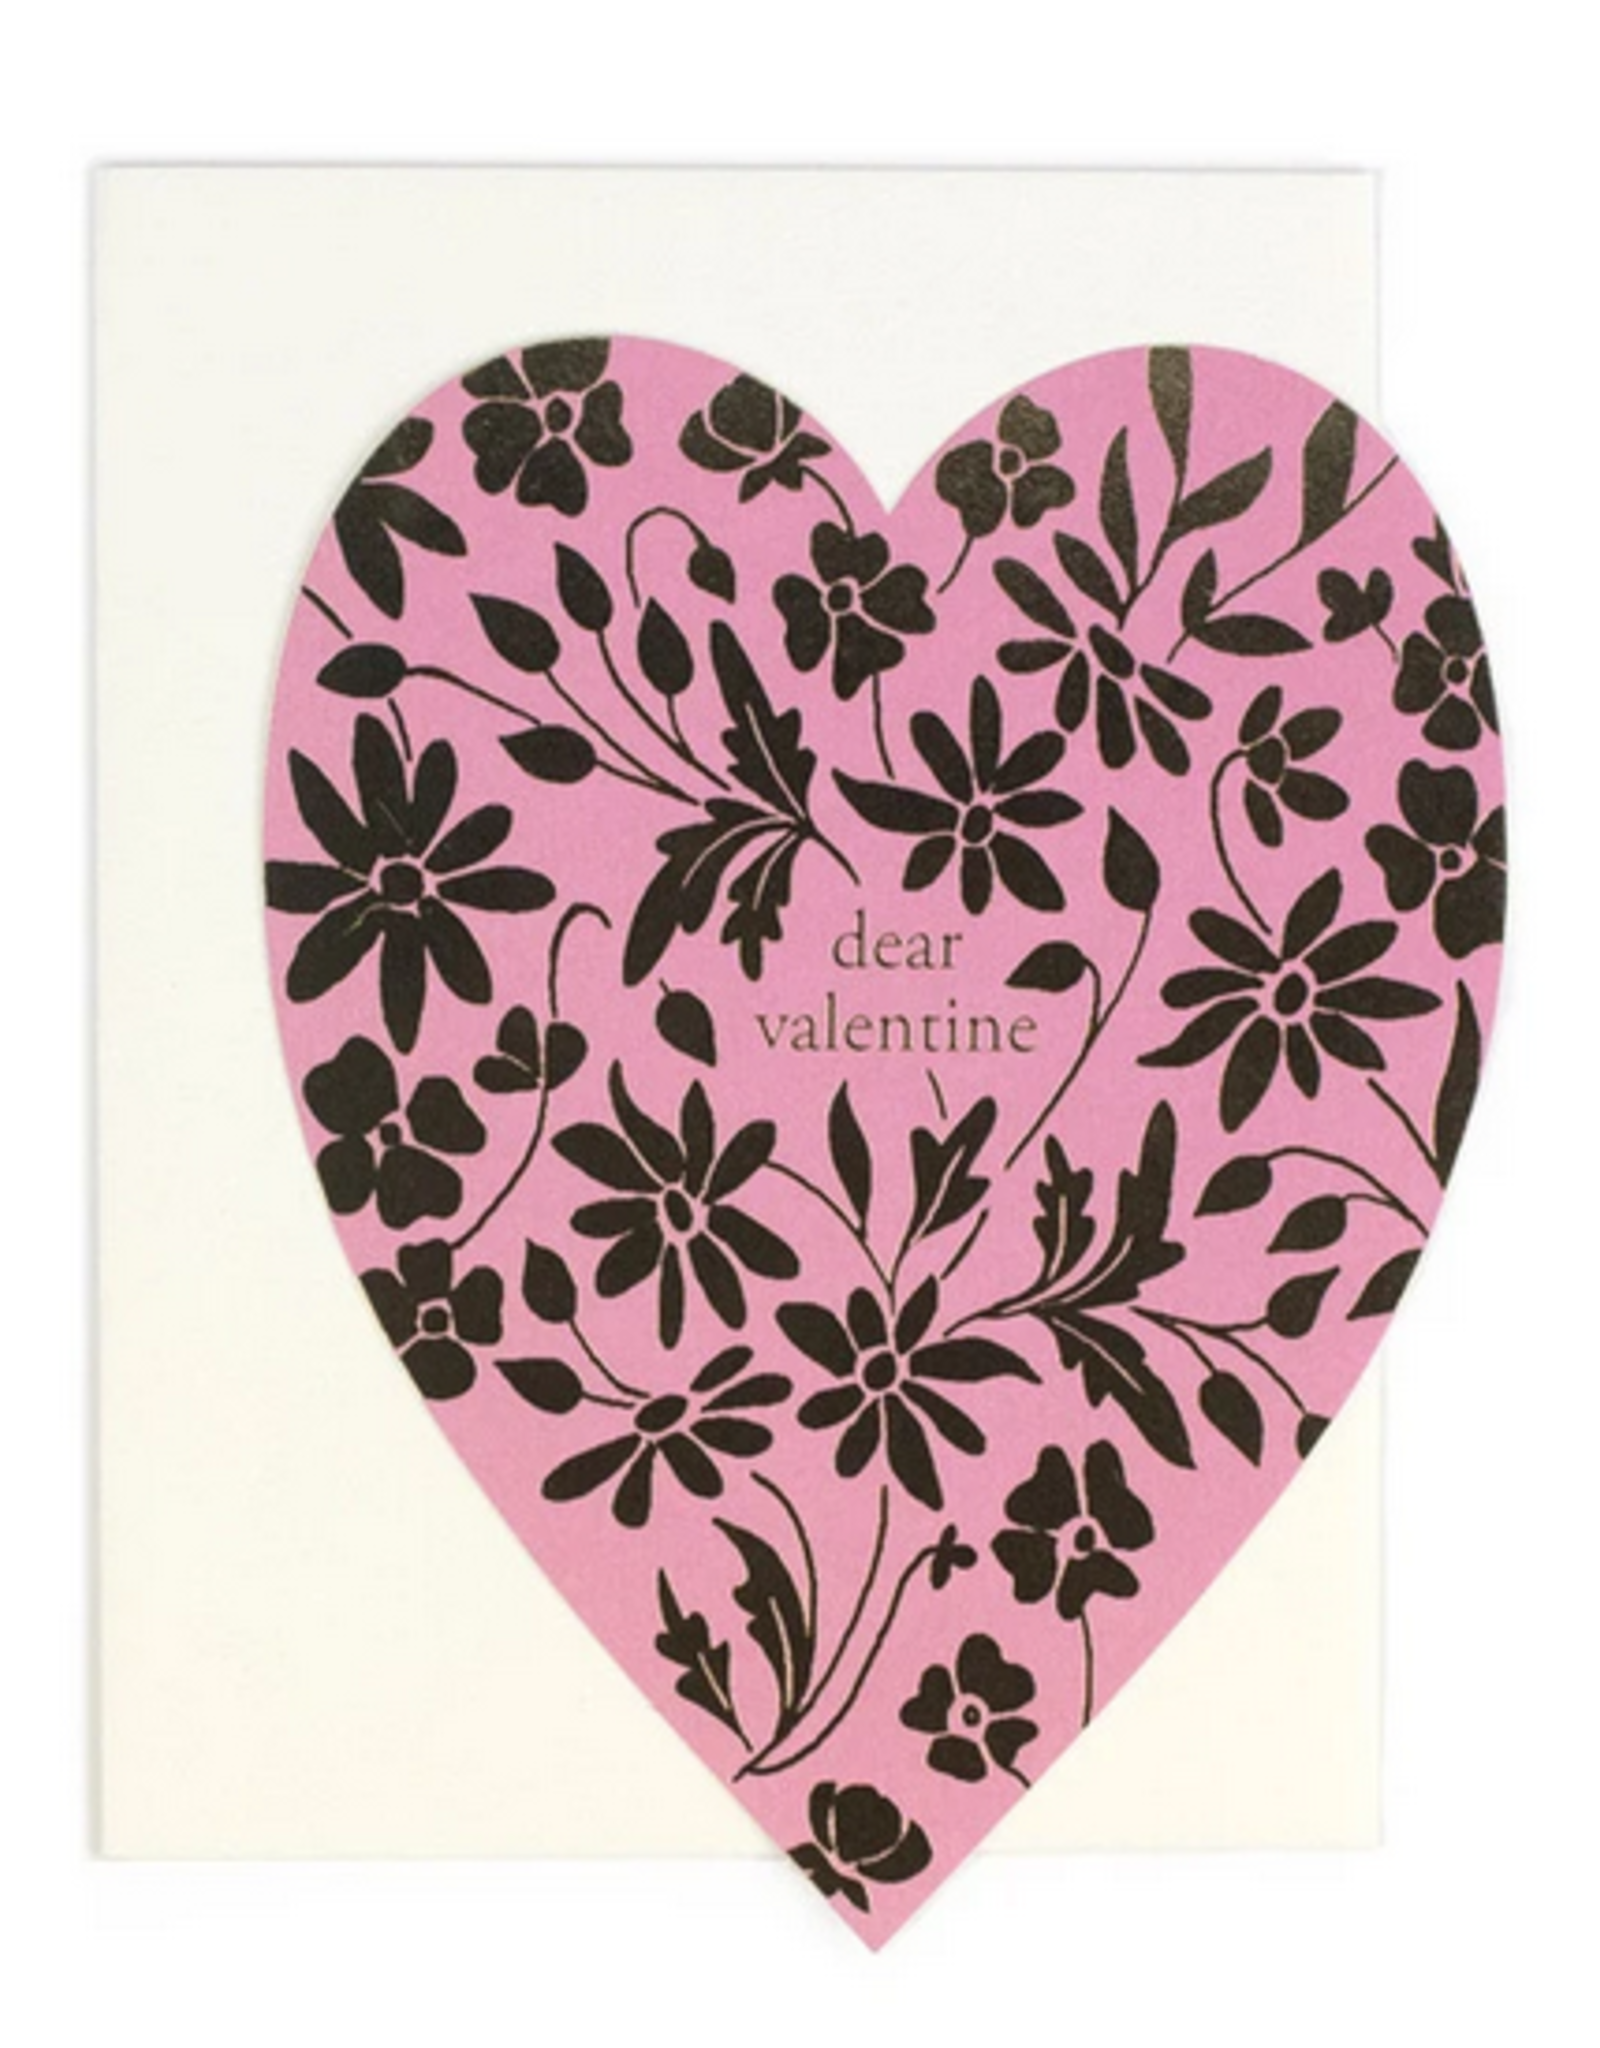 Amy Heitman Illustration Dear Valentine Heart Greeting Card